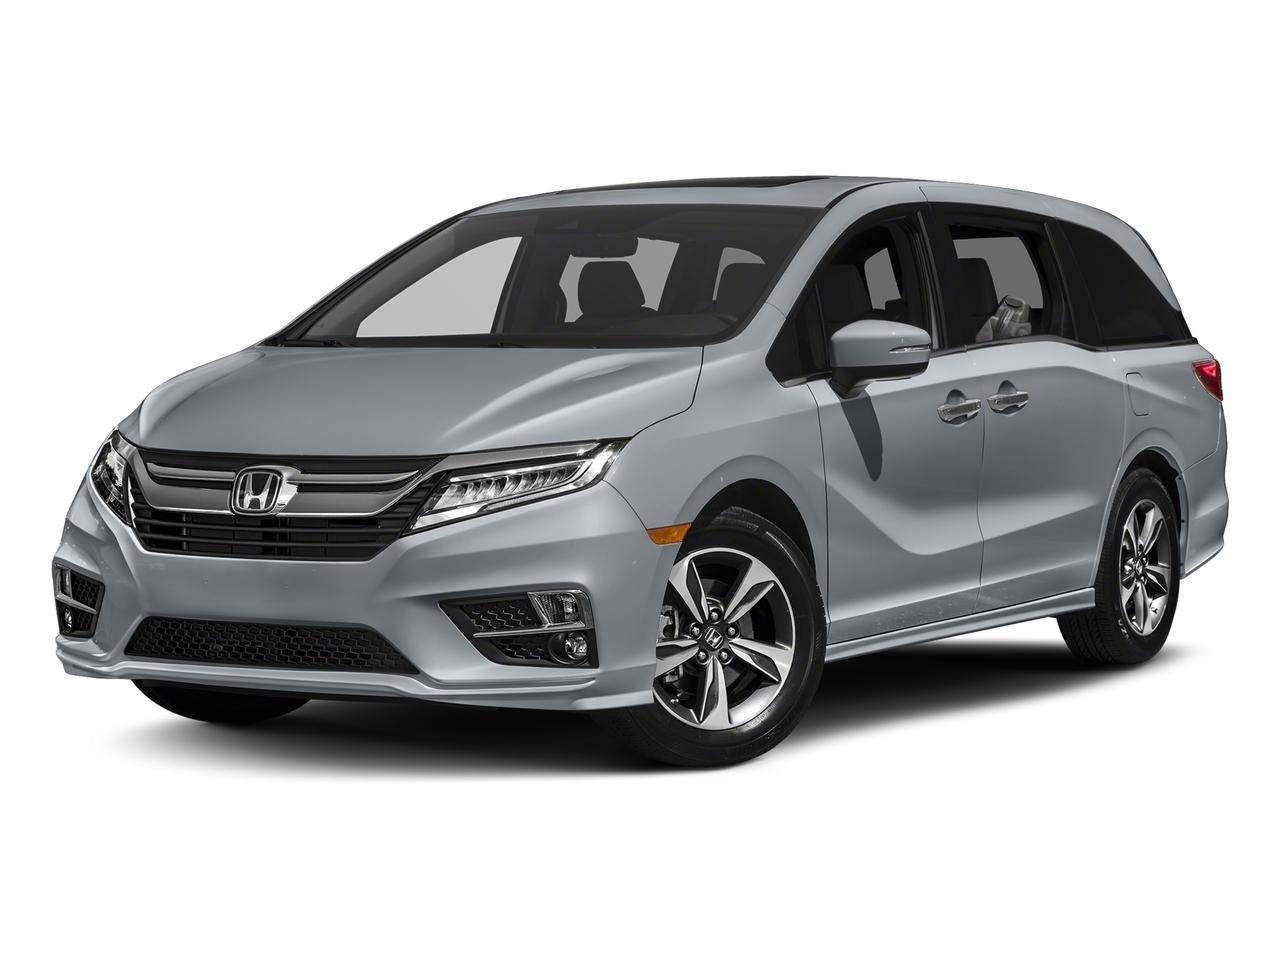 2018 Honda Odyssey Vehicle Photo in Fayetteville, NC 28303